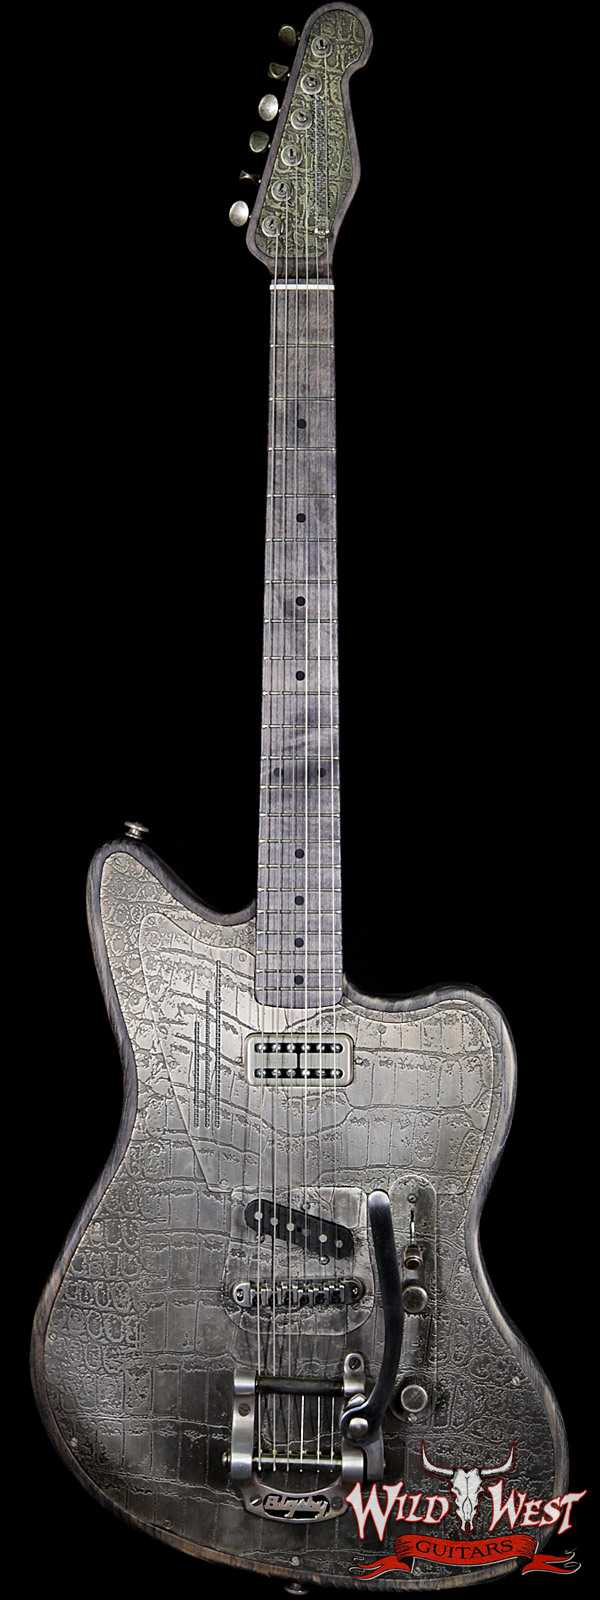 James Trussart SteelTeleMaster Antique Silver Gator Engraved Driftwood Finish Alder Body with Bigsby